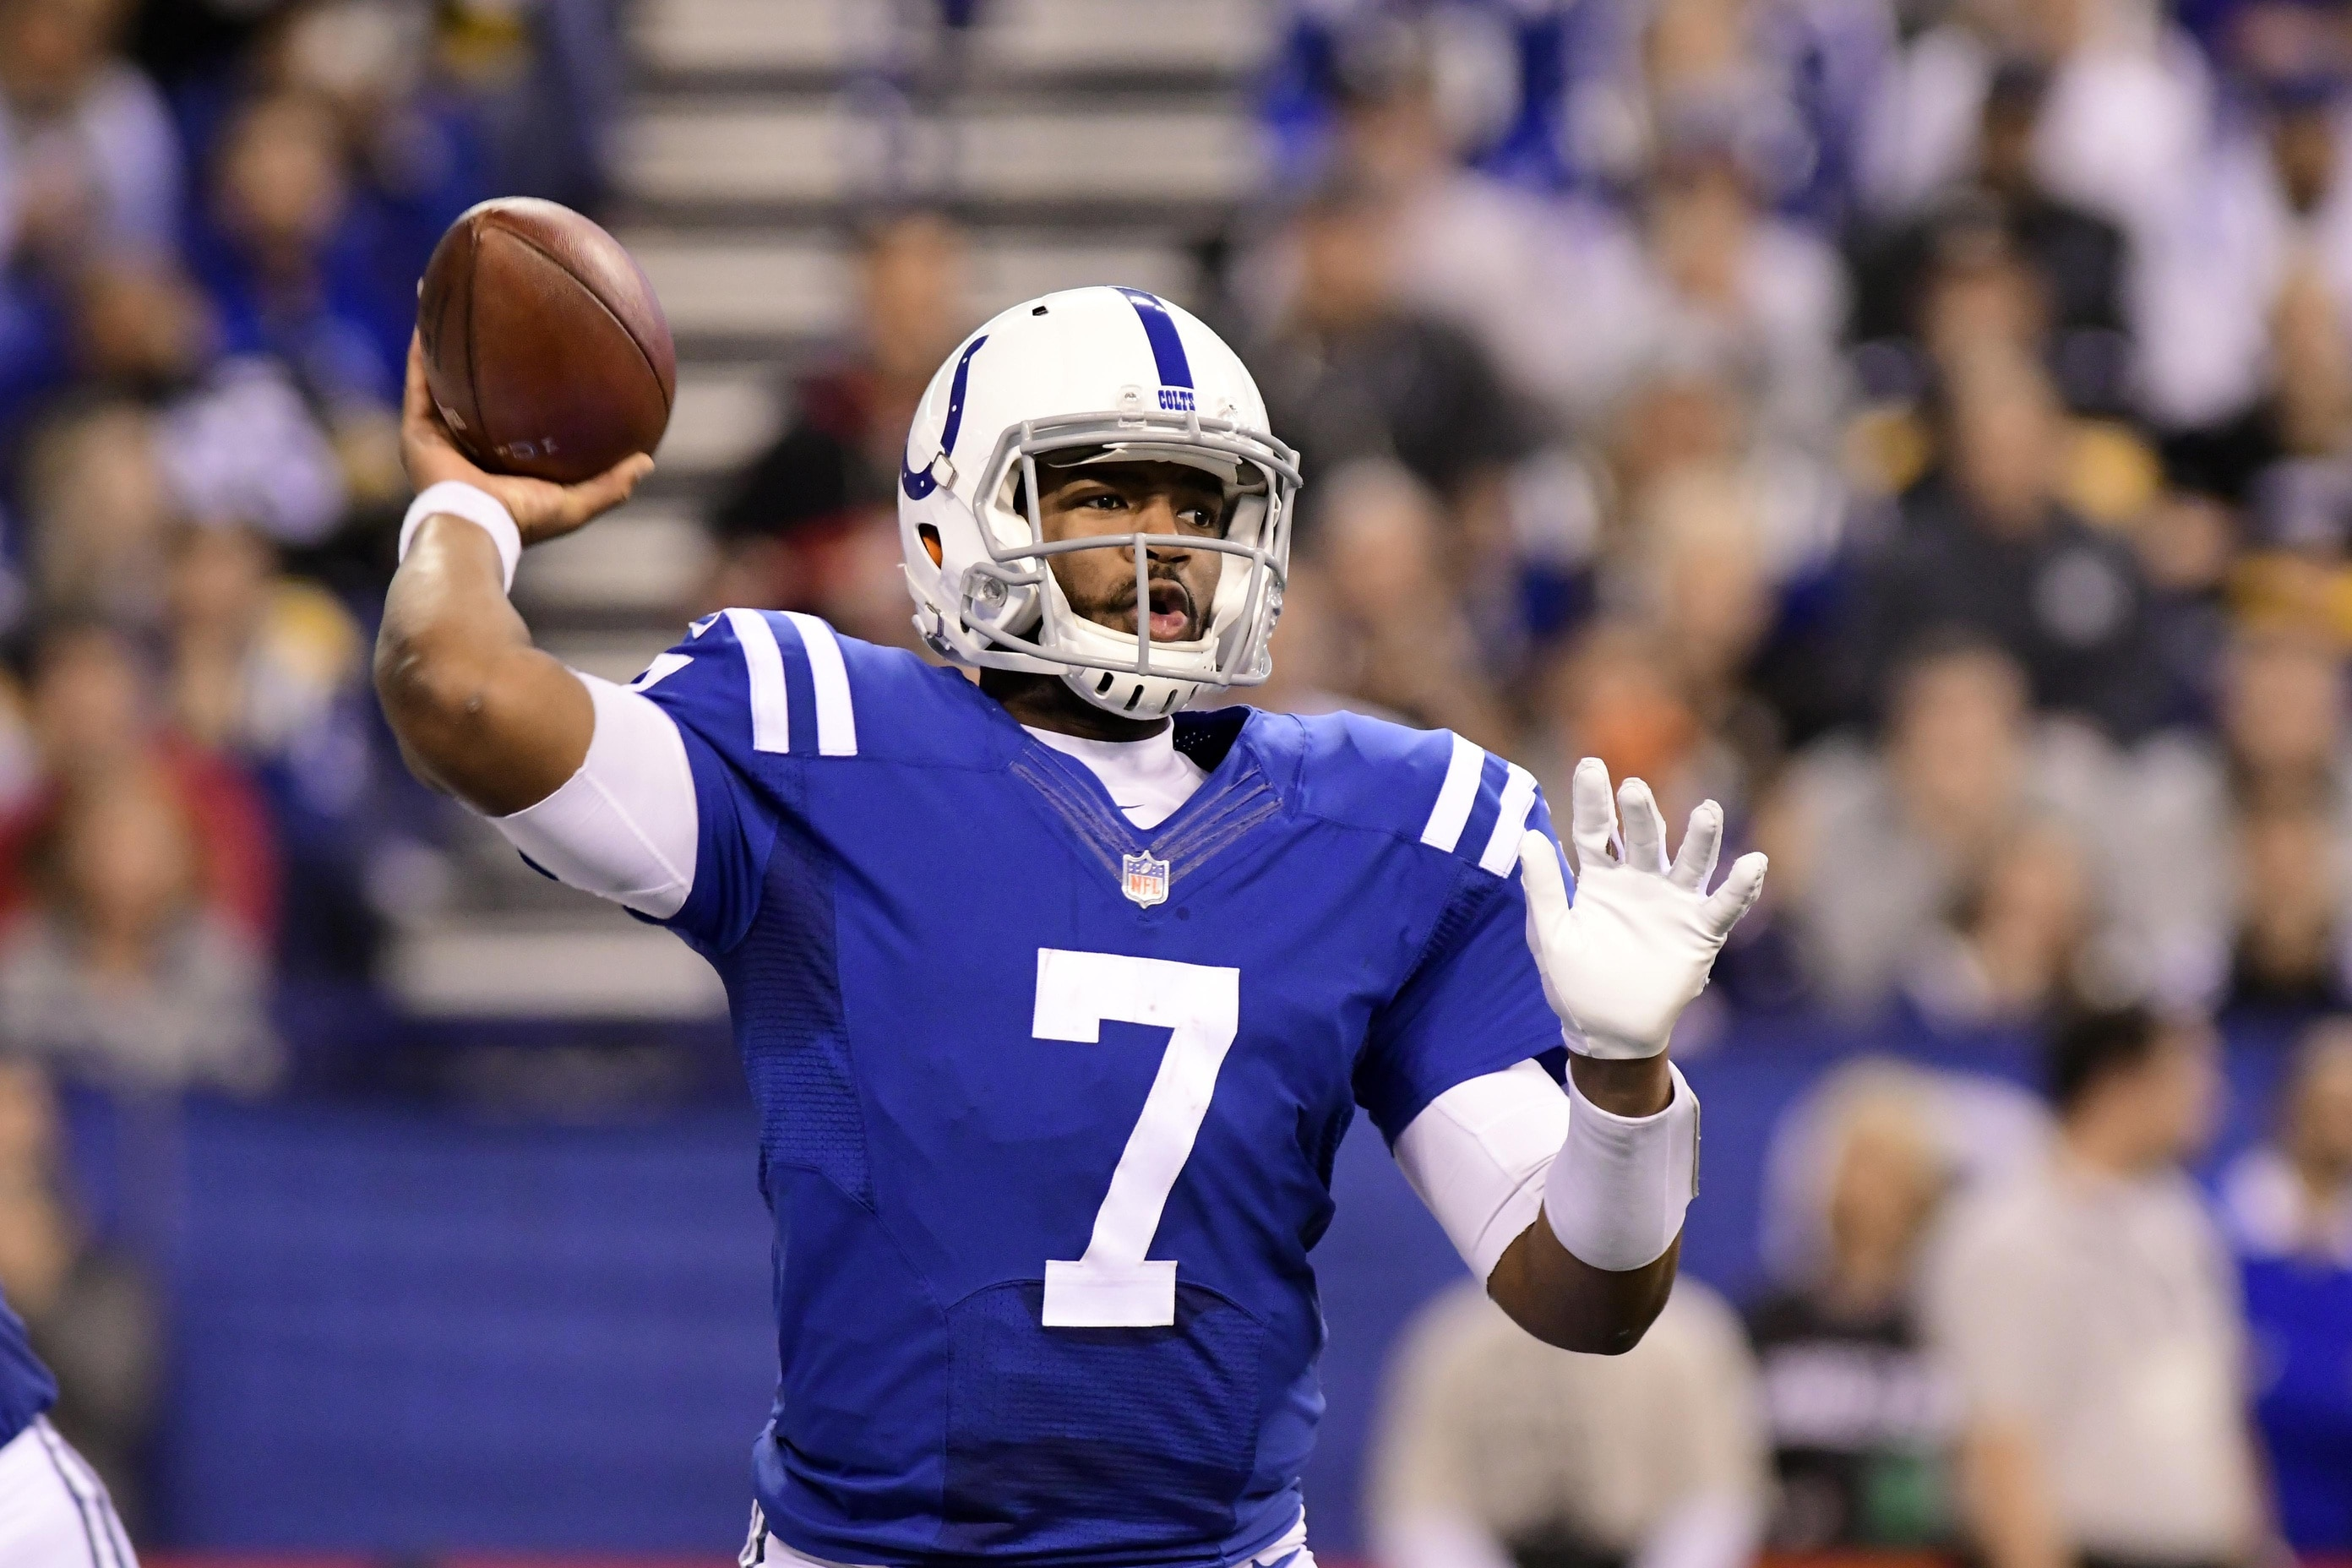 brand new 5c590 89d97 LOOK: Jacoby Brissett wears Bobby Boucher 'Waterboy' jersey